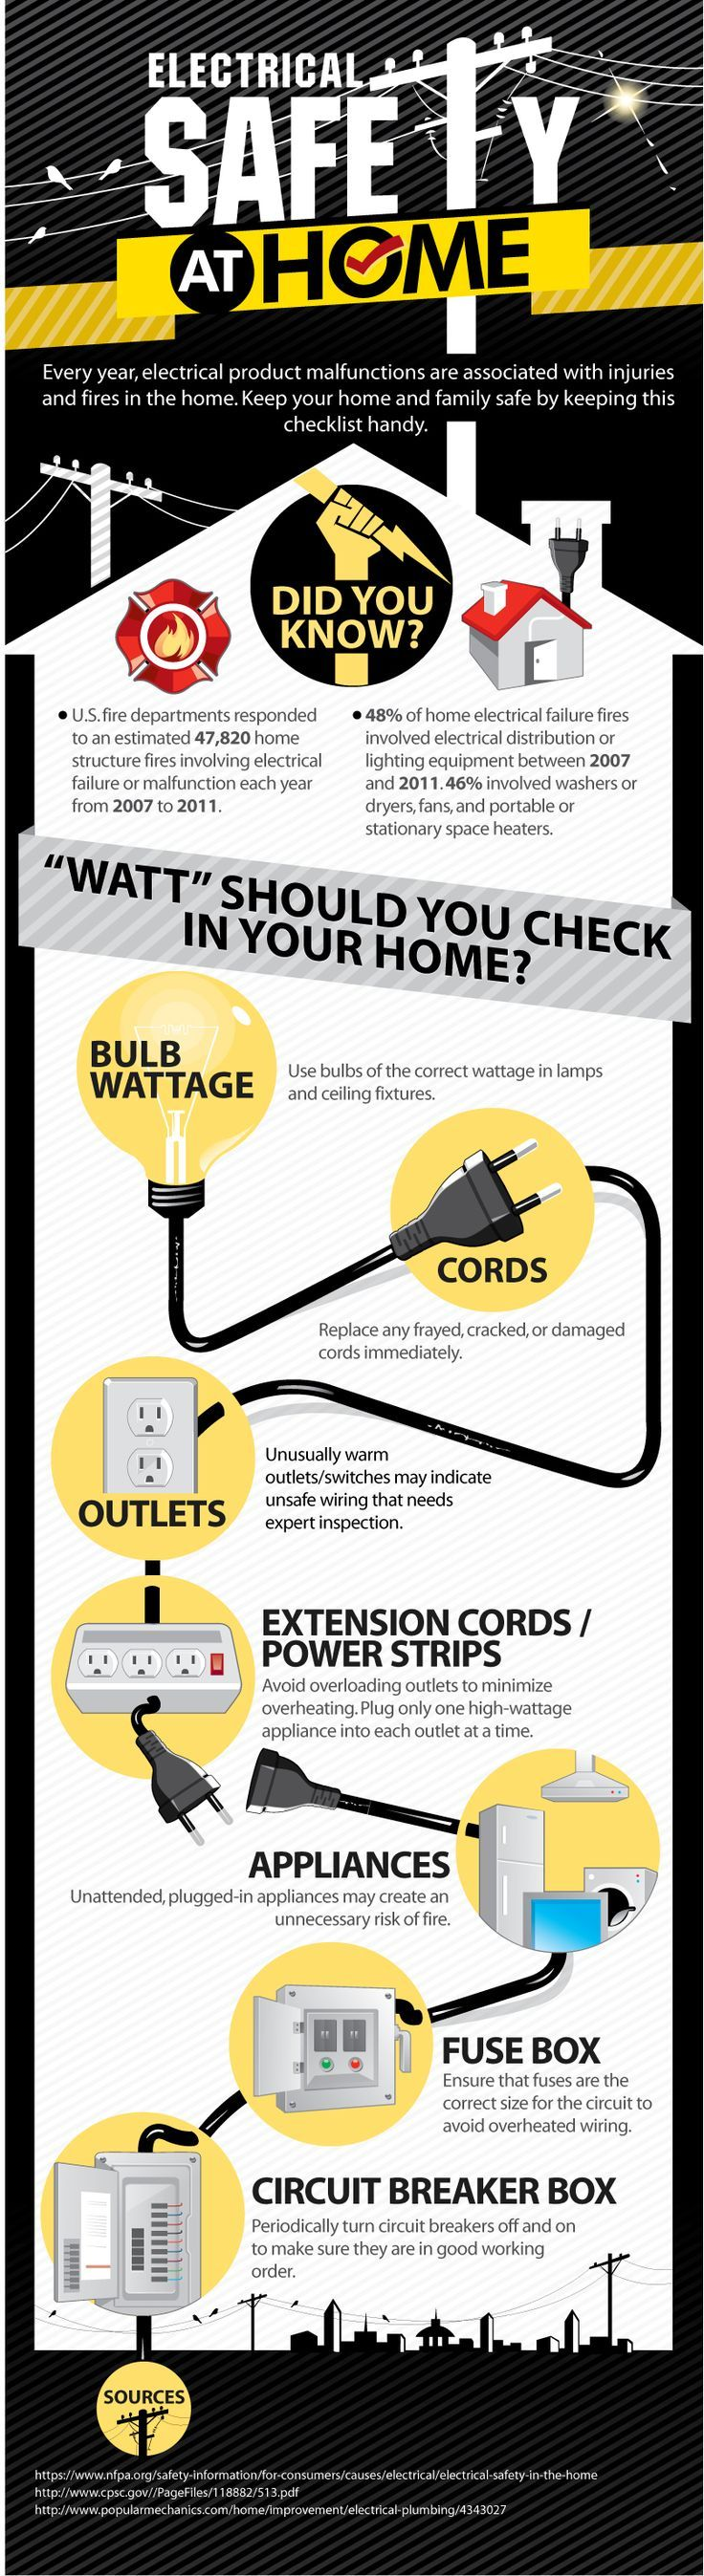 Electrical Safety At Home Homesafety